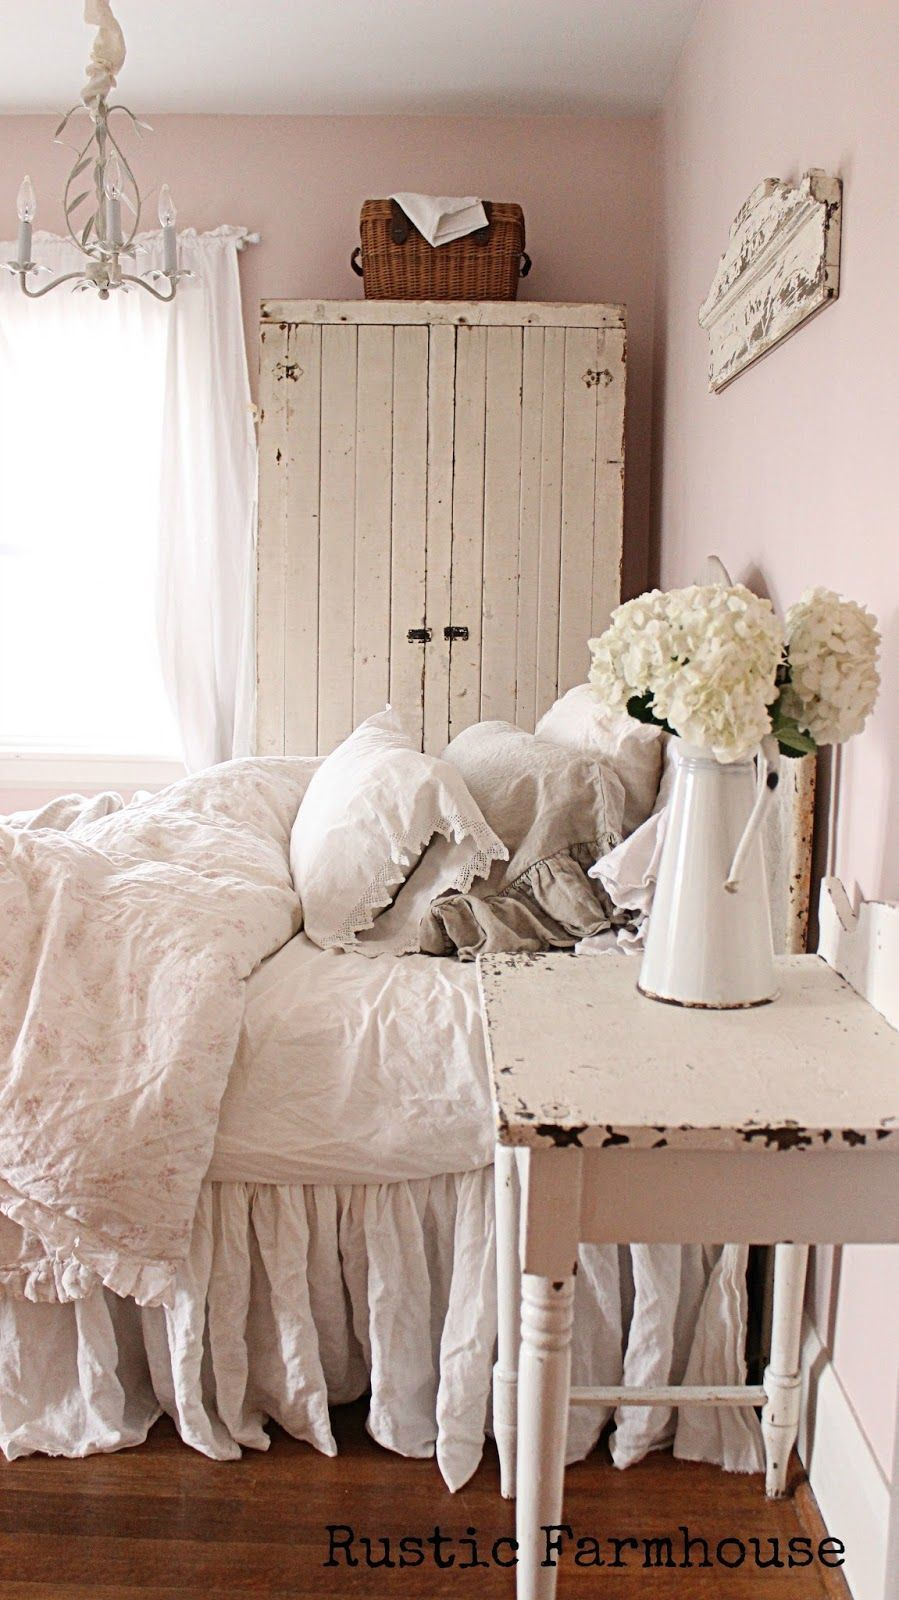 Romantisches schlafzimmer interieur rustic farmhouse rachel ashwell shabby chic couture bedding